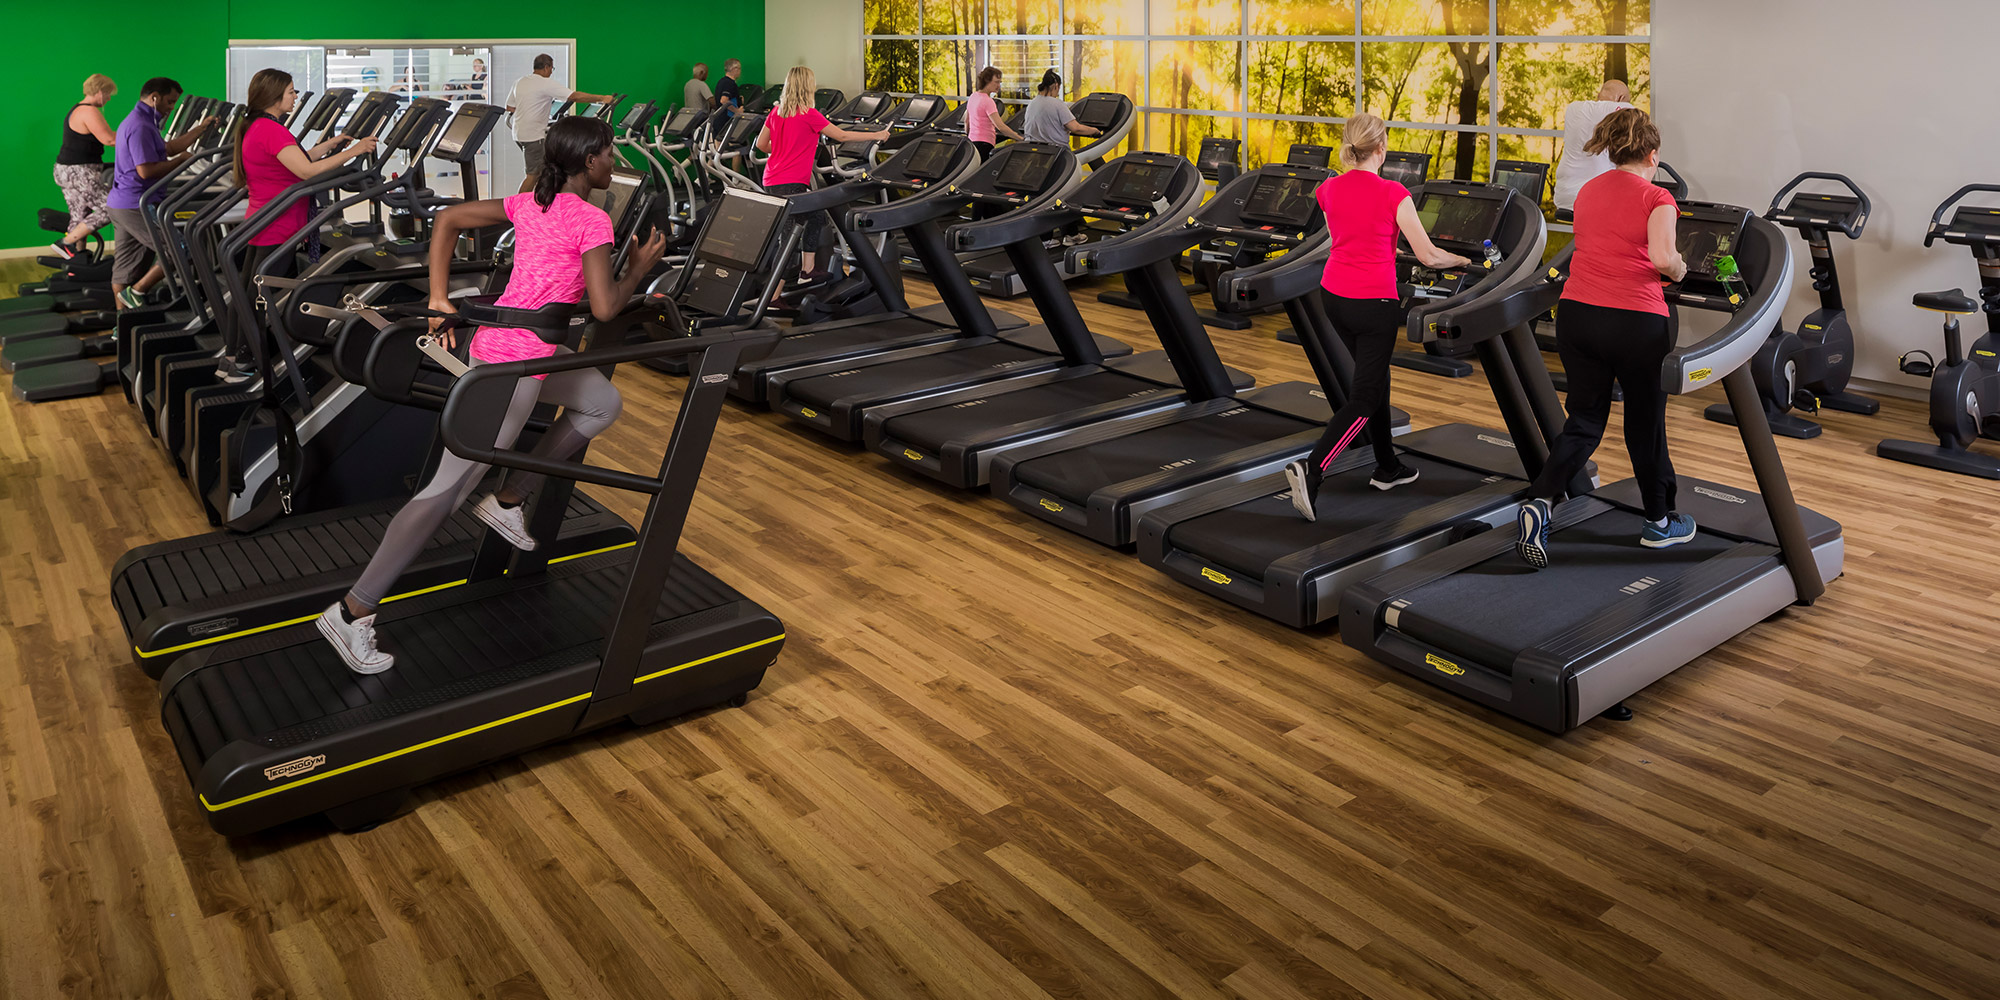 Chingford Fitness & Wellbeing Gym